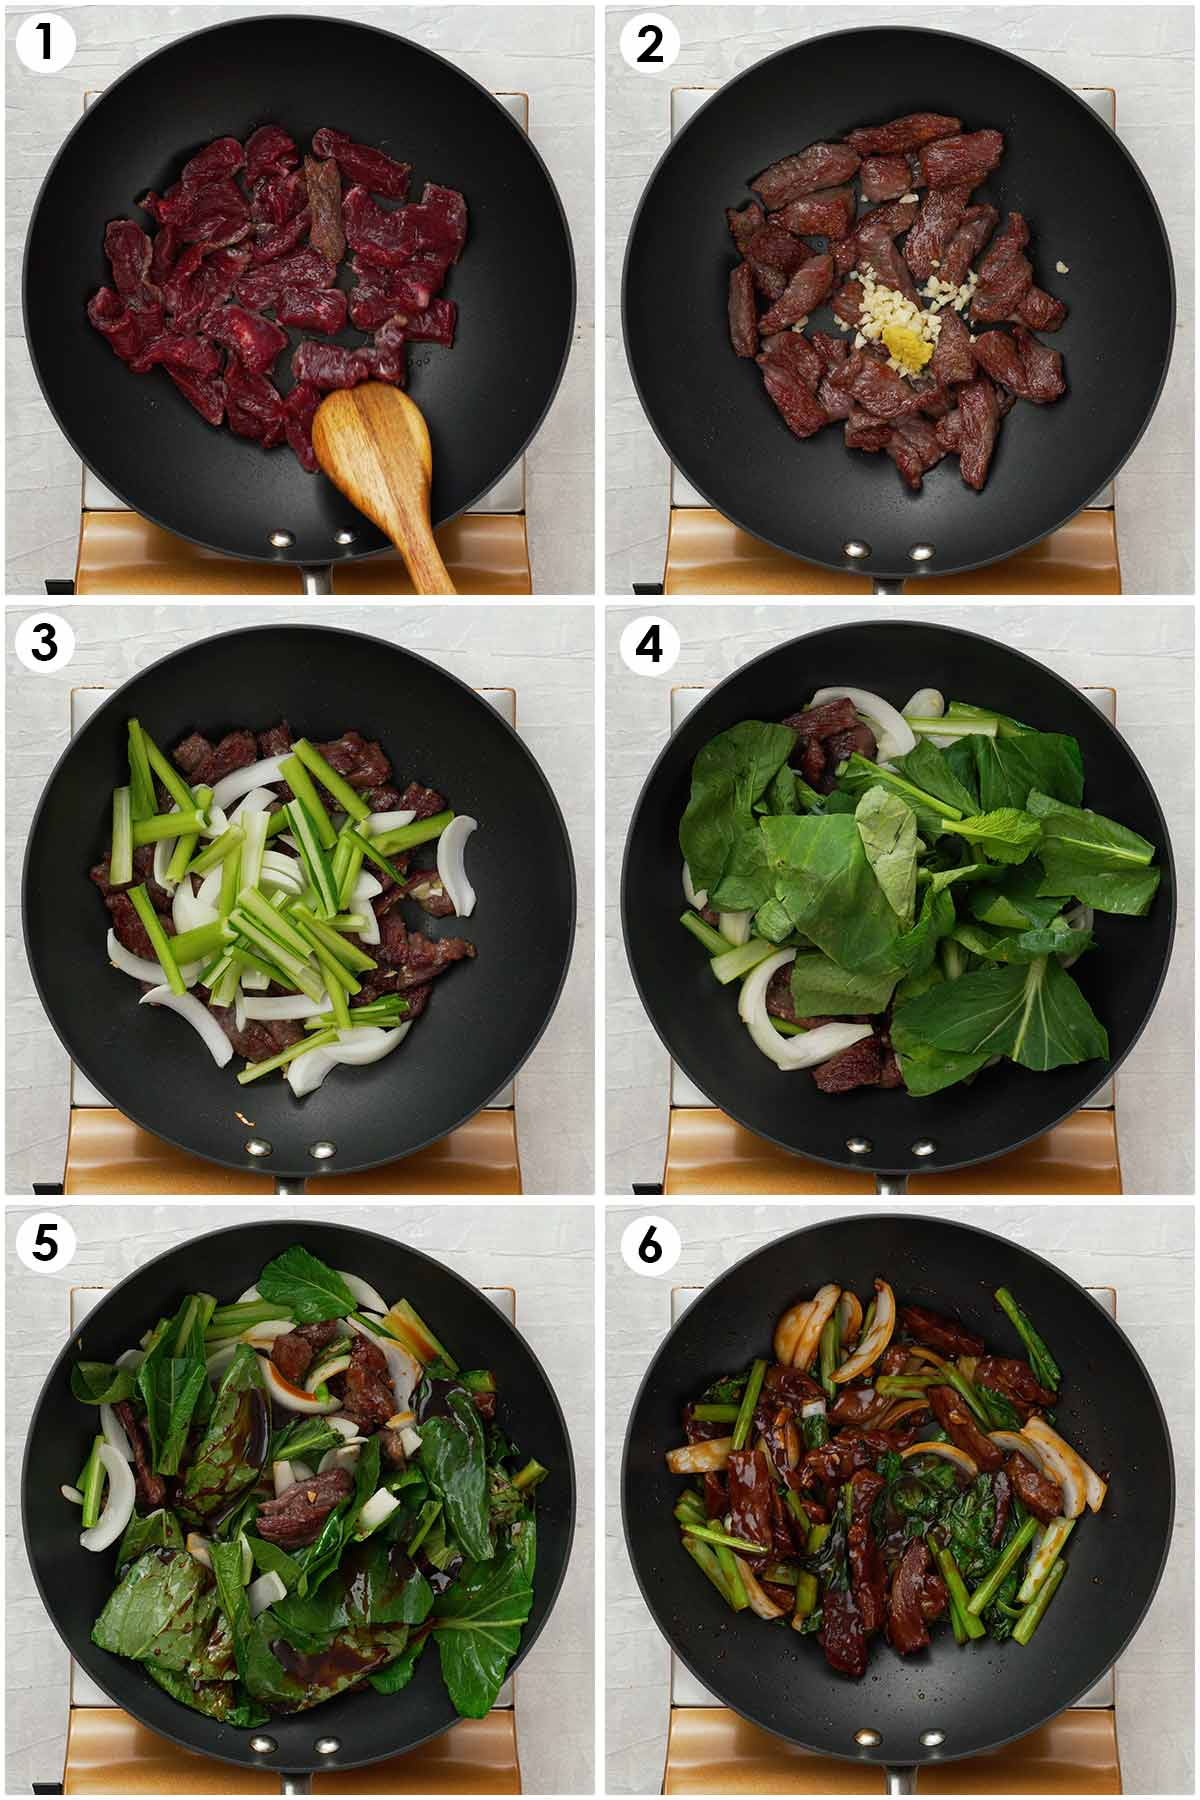 Six image collage showing how to make stir fry beef in oyster sauce.